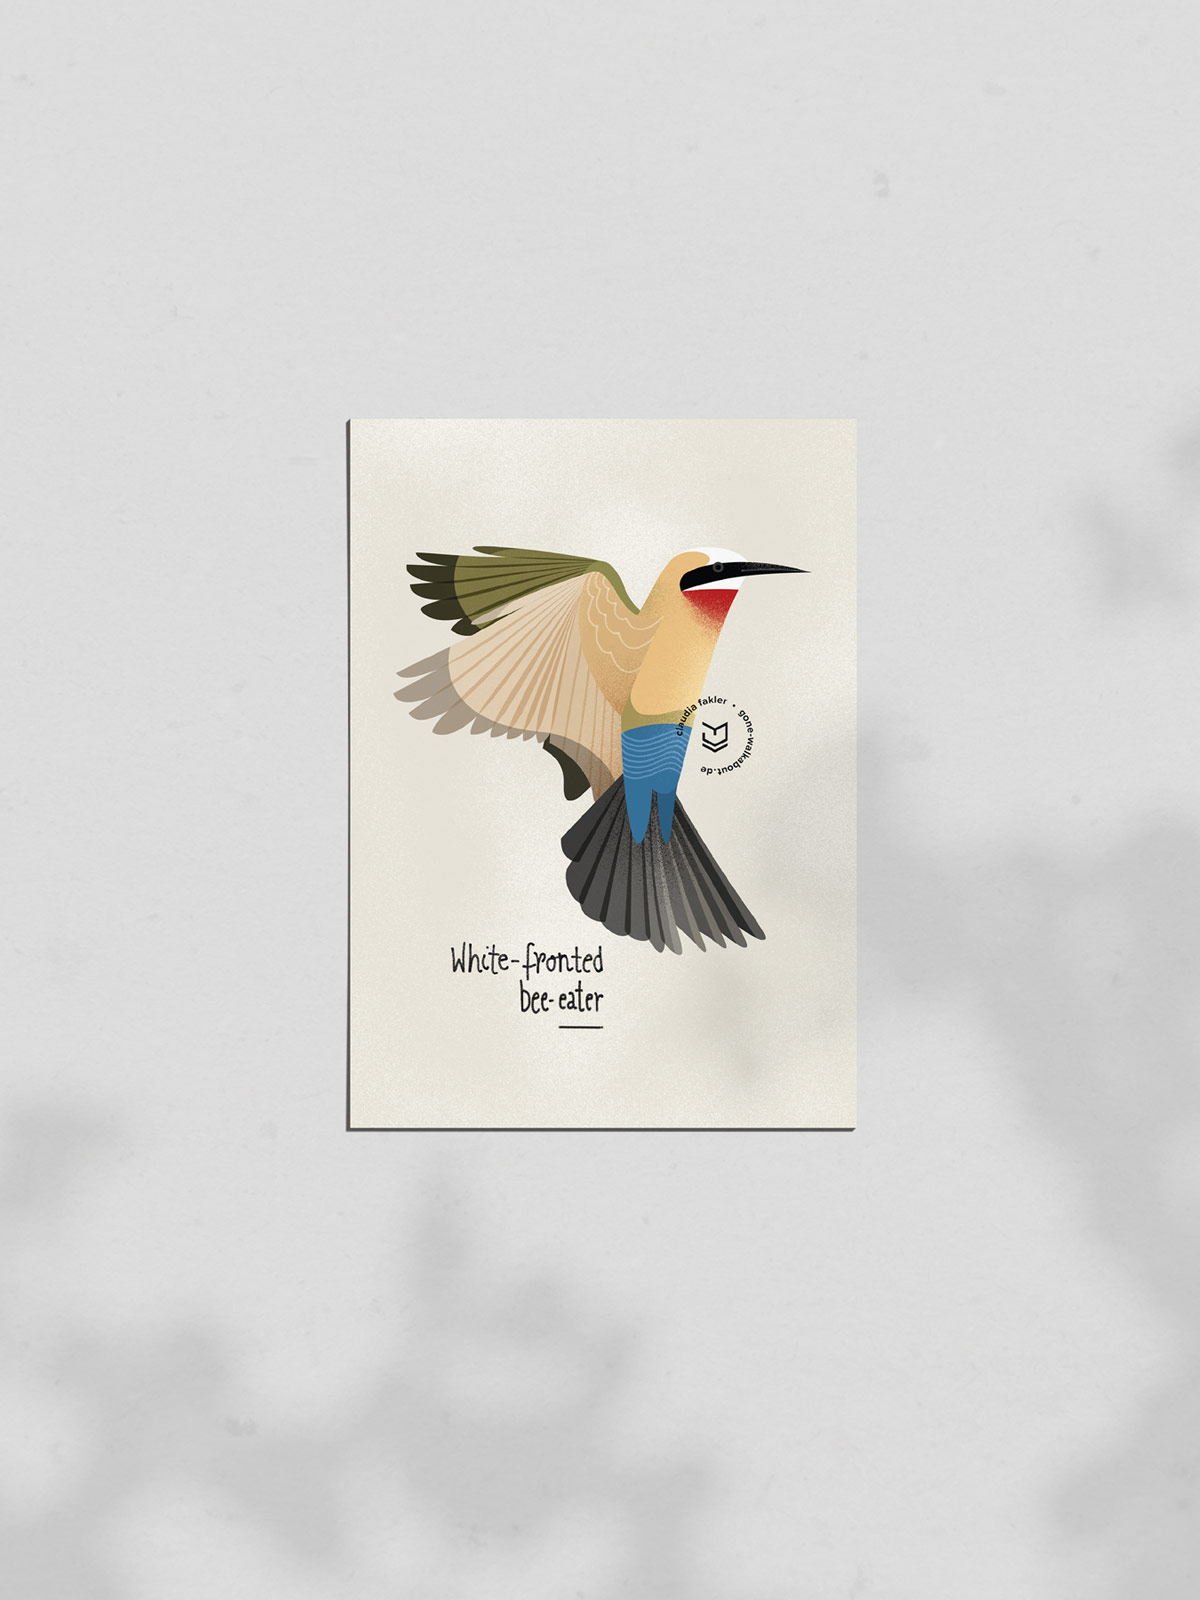 gw-shop-postcard-white-fronted-beeeater-01